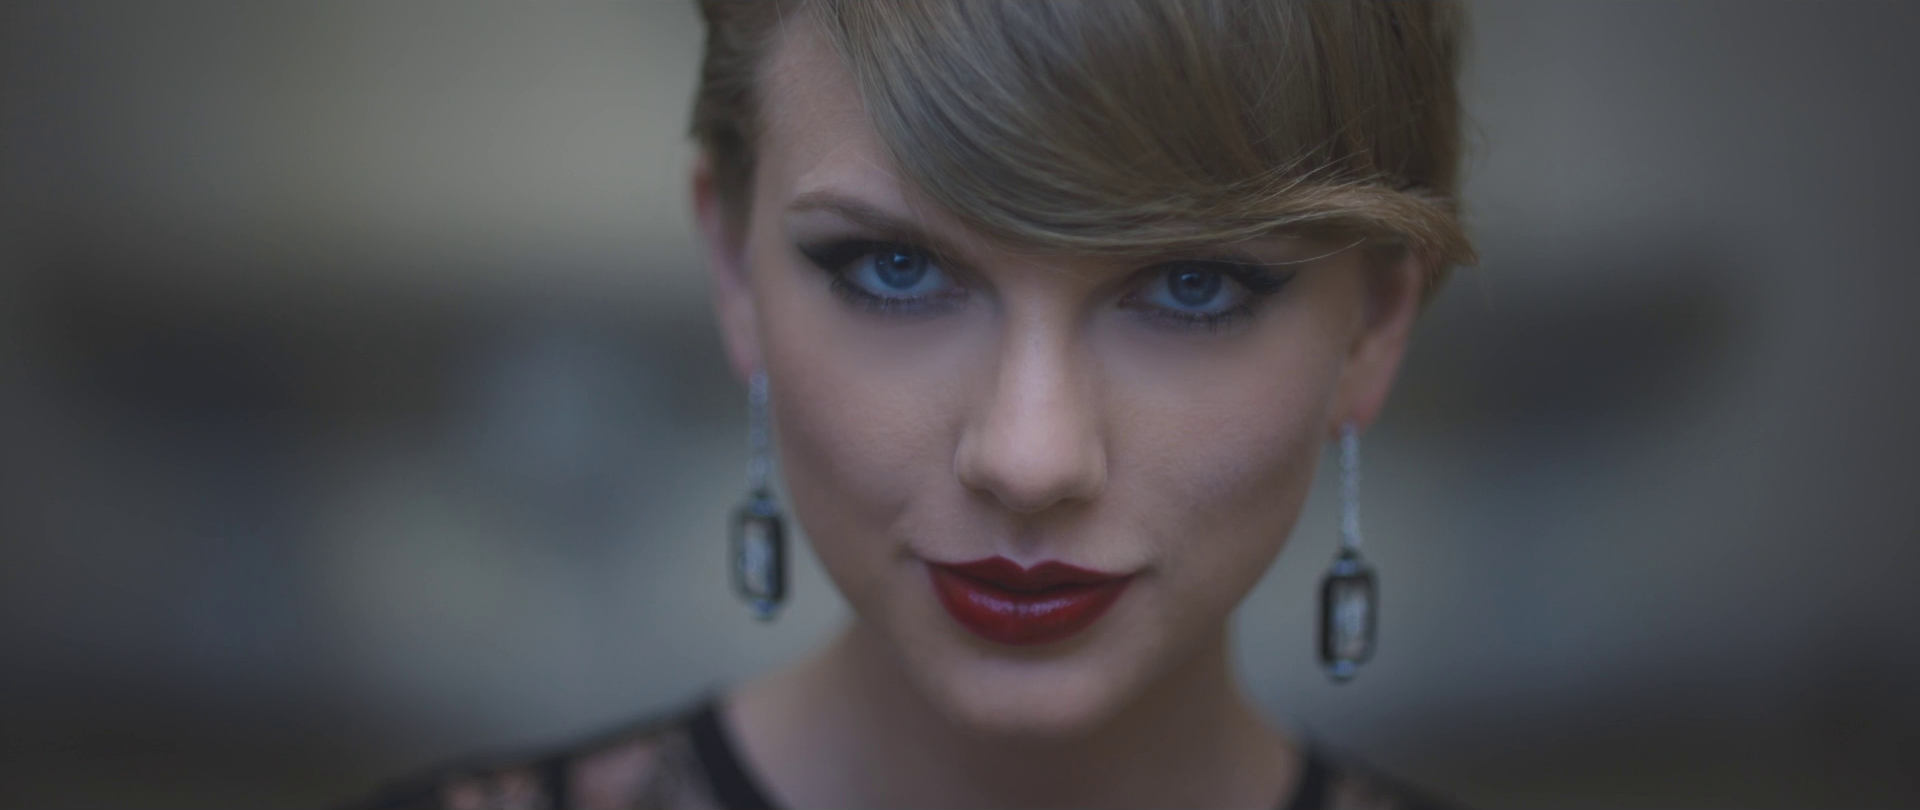 File:Taylor Swift - Blank Space.png - Wikipedia